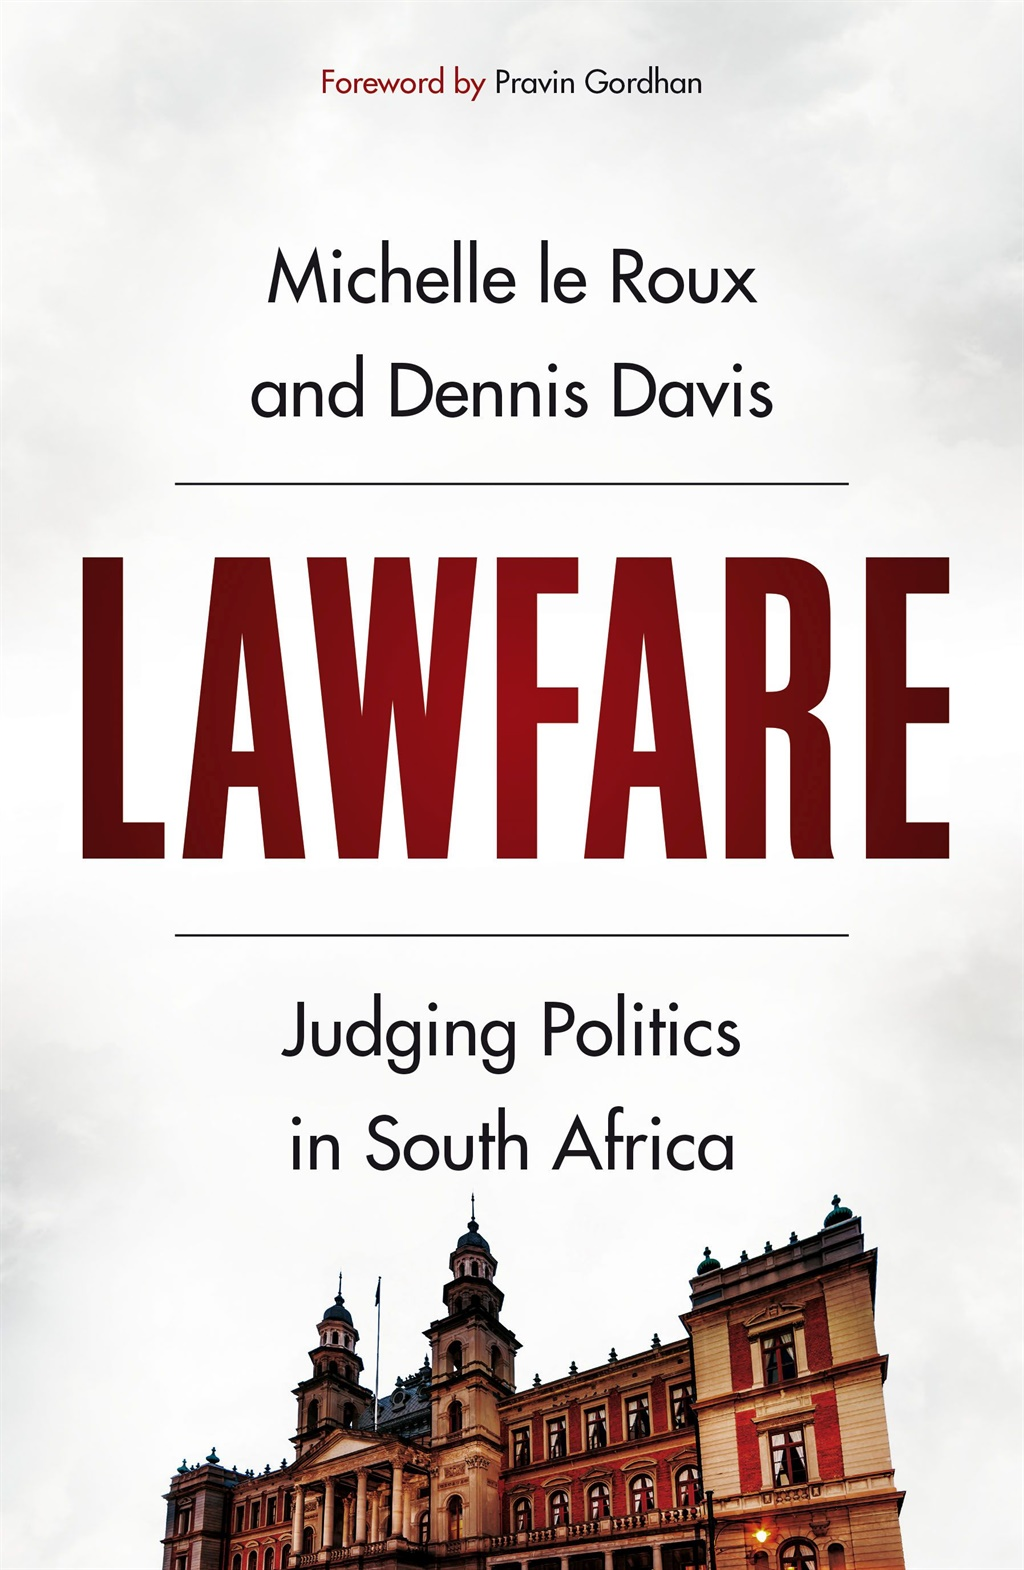 Lawfare: Judging Politics in South Africa by Michelle le Roux and Dennis Davis (Jonathan Ball Publishers)